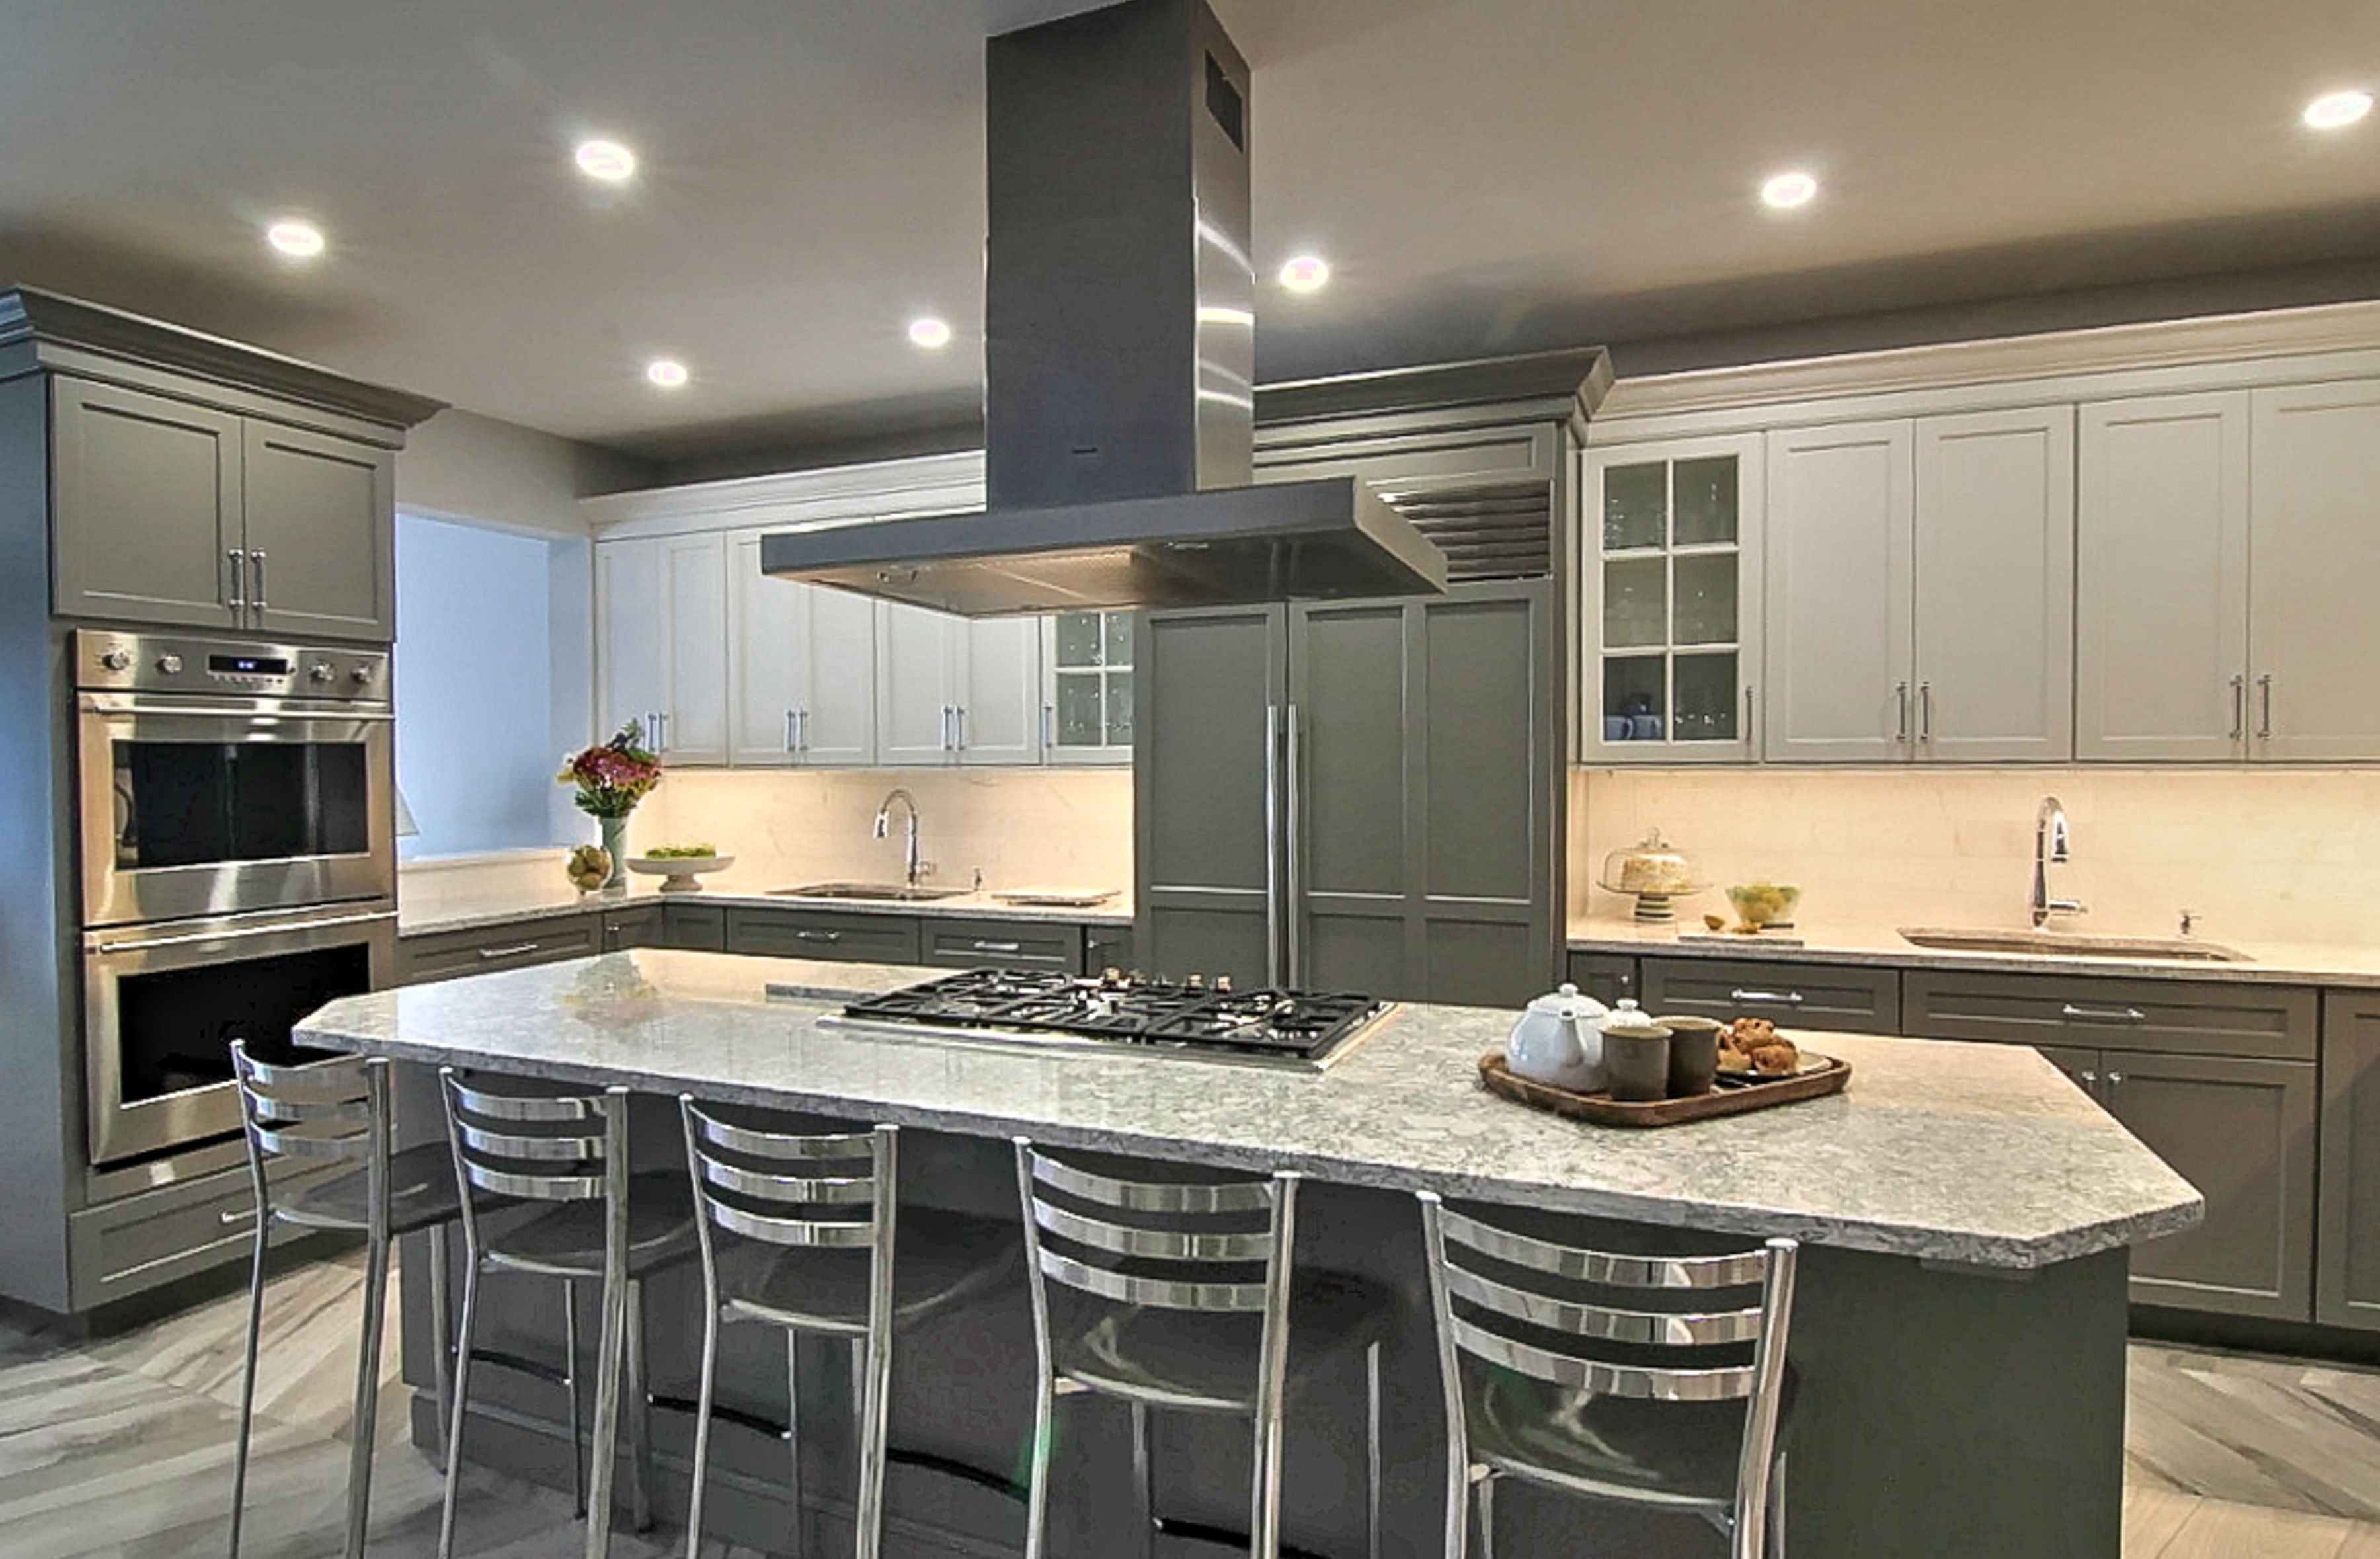 Monogram Elevates A Kosher Kitchen With Grand Gourmet Style Save Room For Design